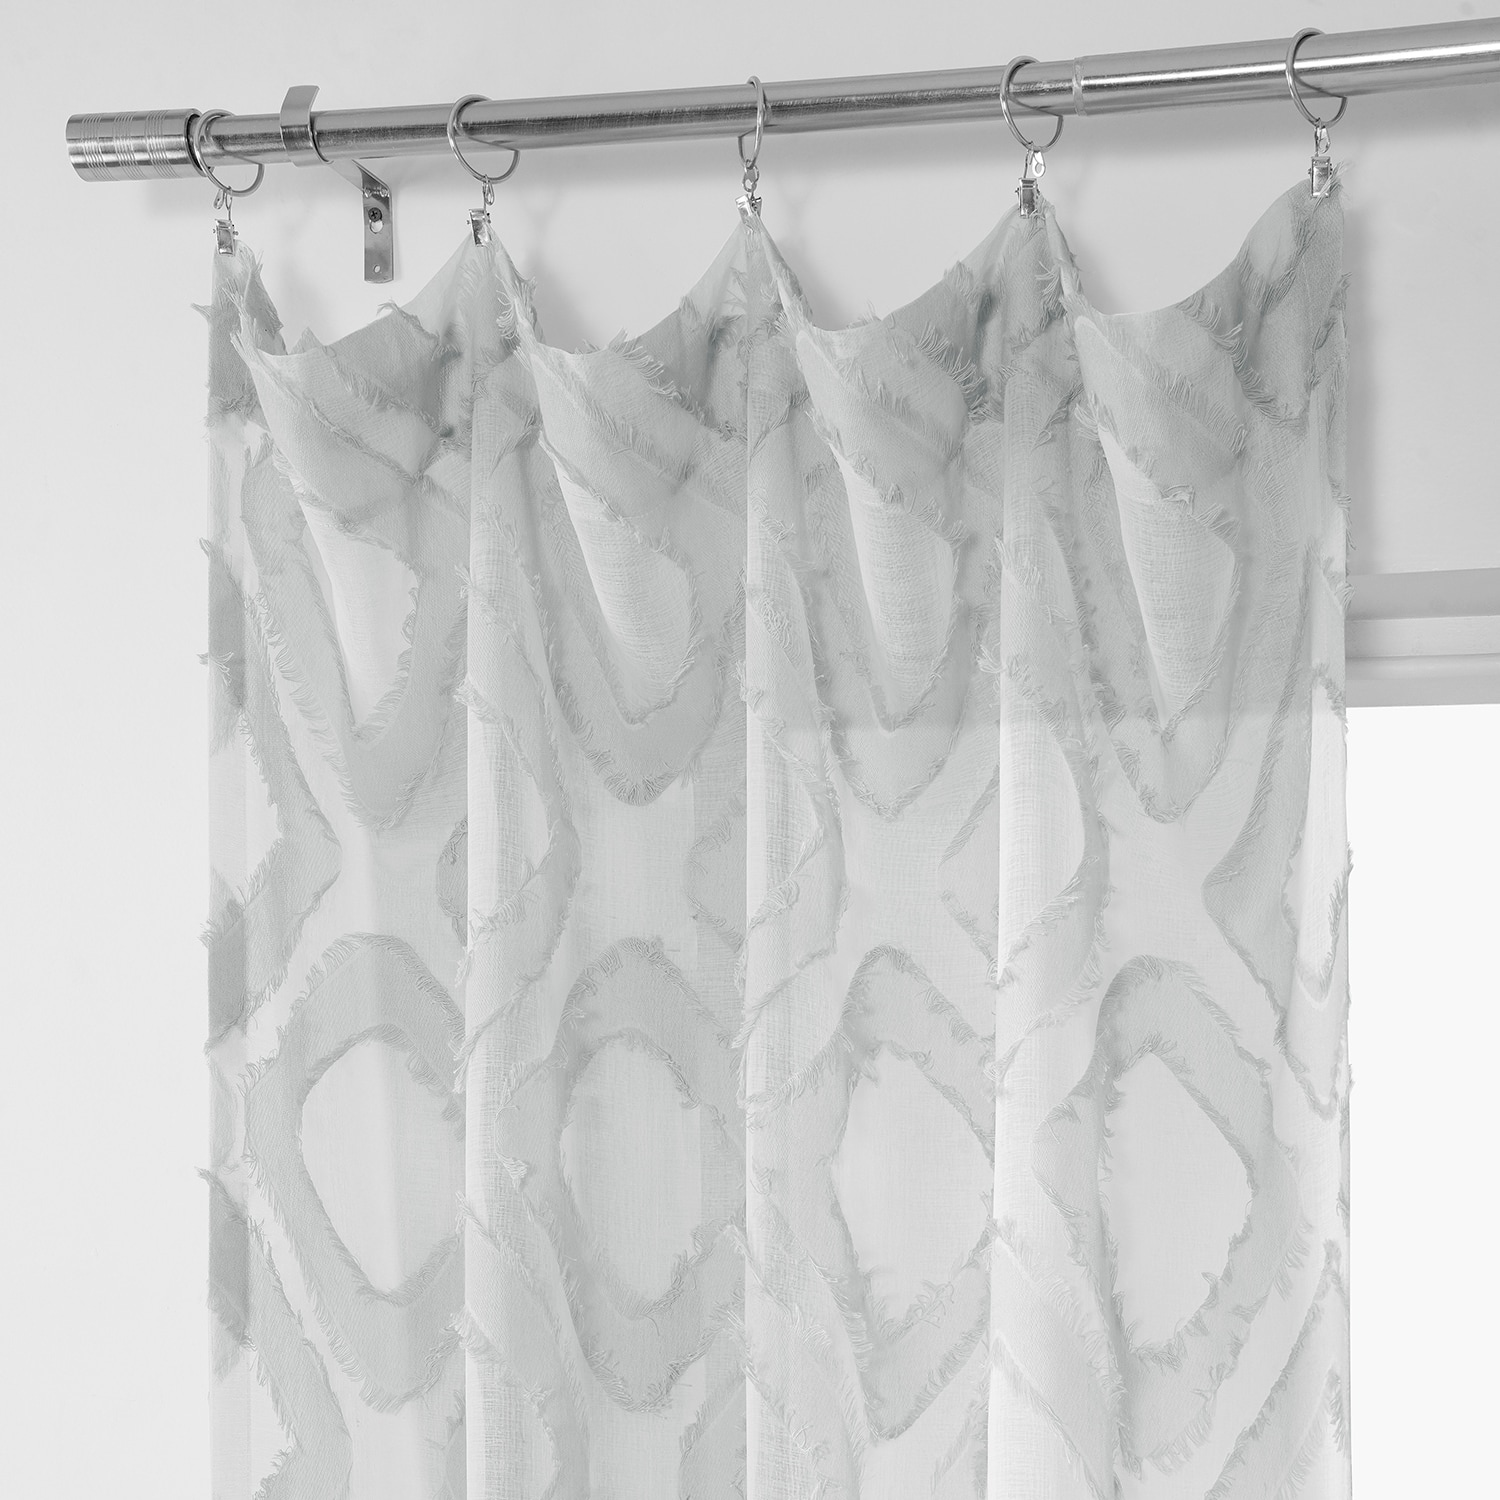 Capella Silver Patterned Linen Sheer Curtain